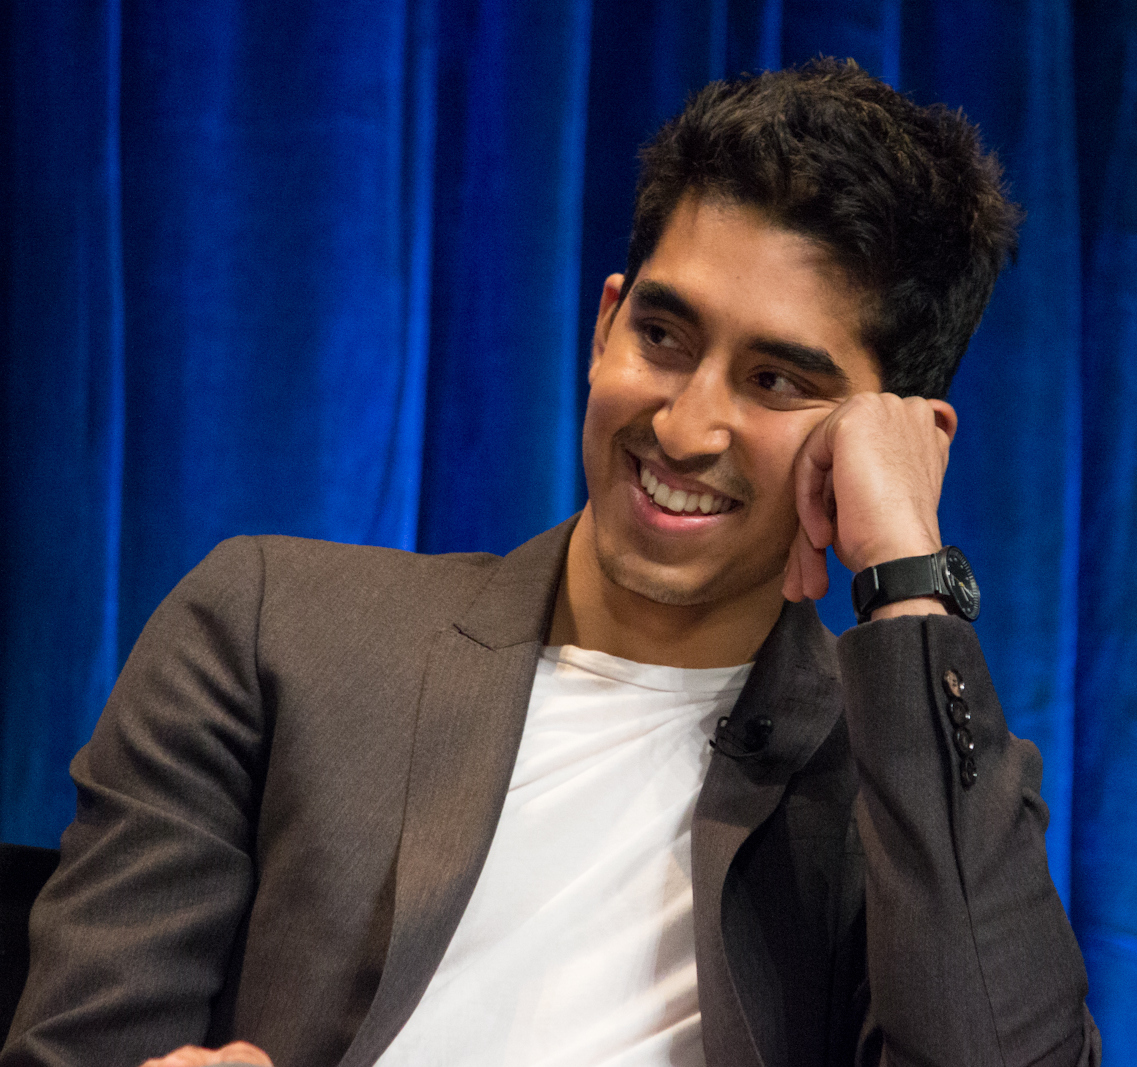 Dev Patel - Wikipedia